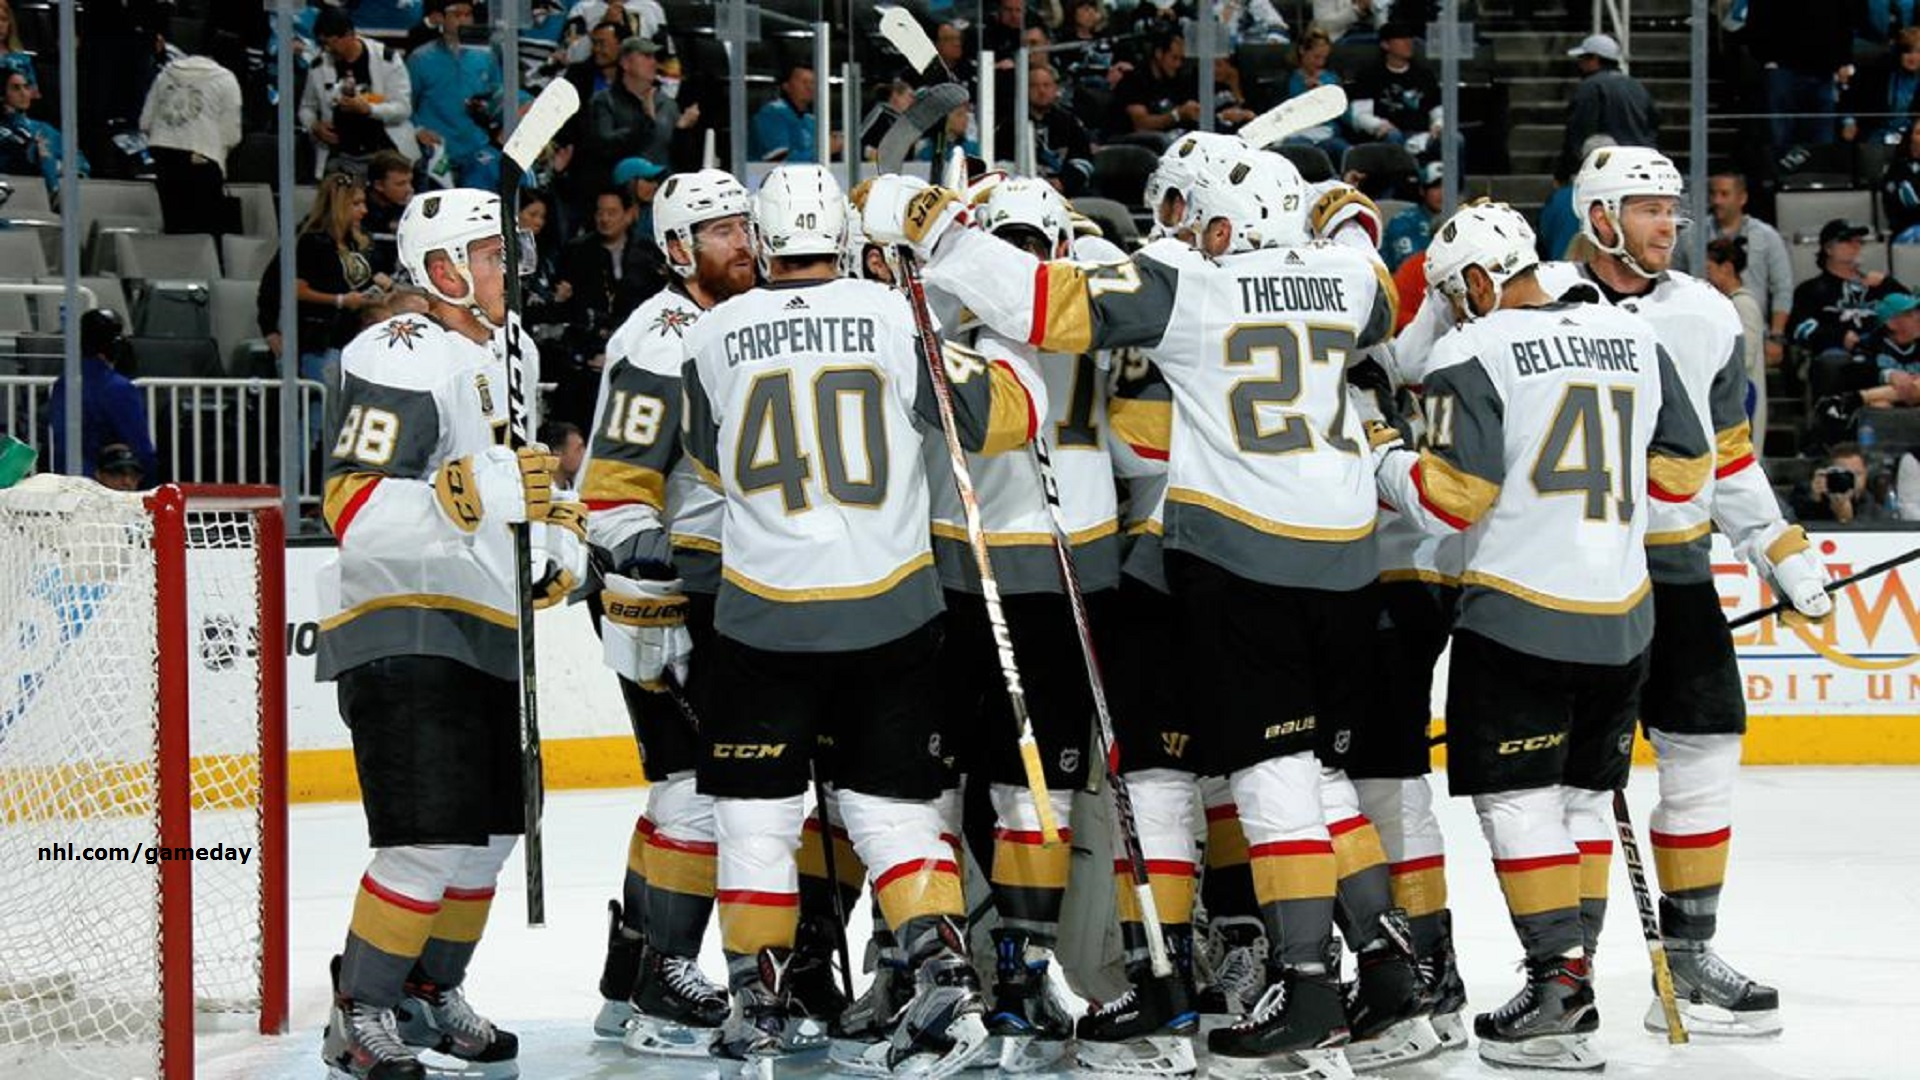 Nhl S Gamble In Las Vegas Hits Jackpot